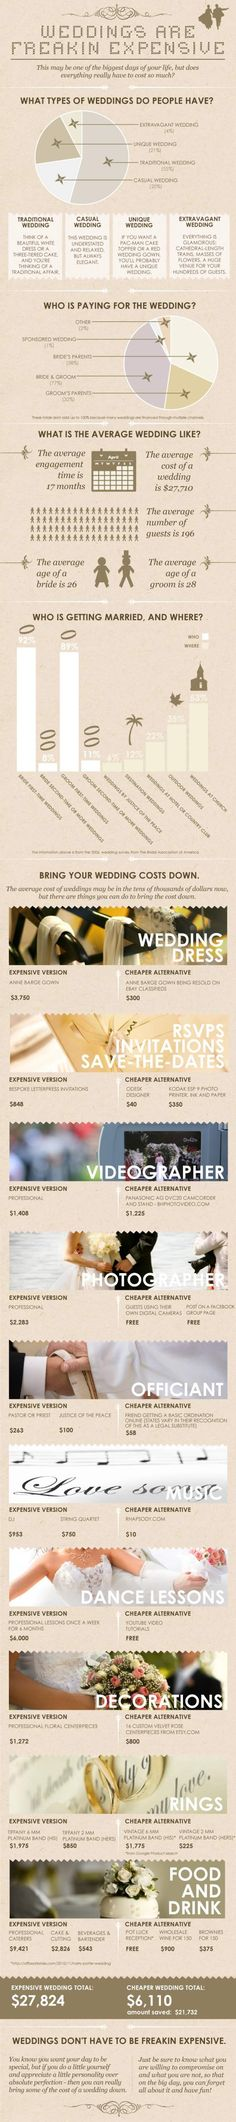 Yes, we know that weddings can cost a ton. But, why? This heaven-sent graphic breaks it all the way down. Image via Infographics List